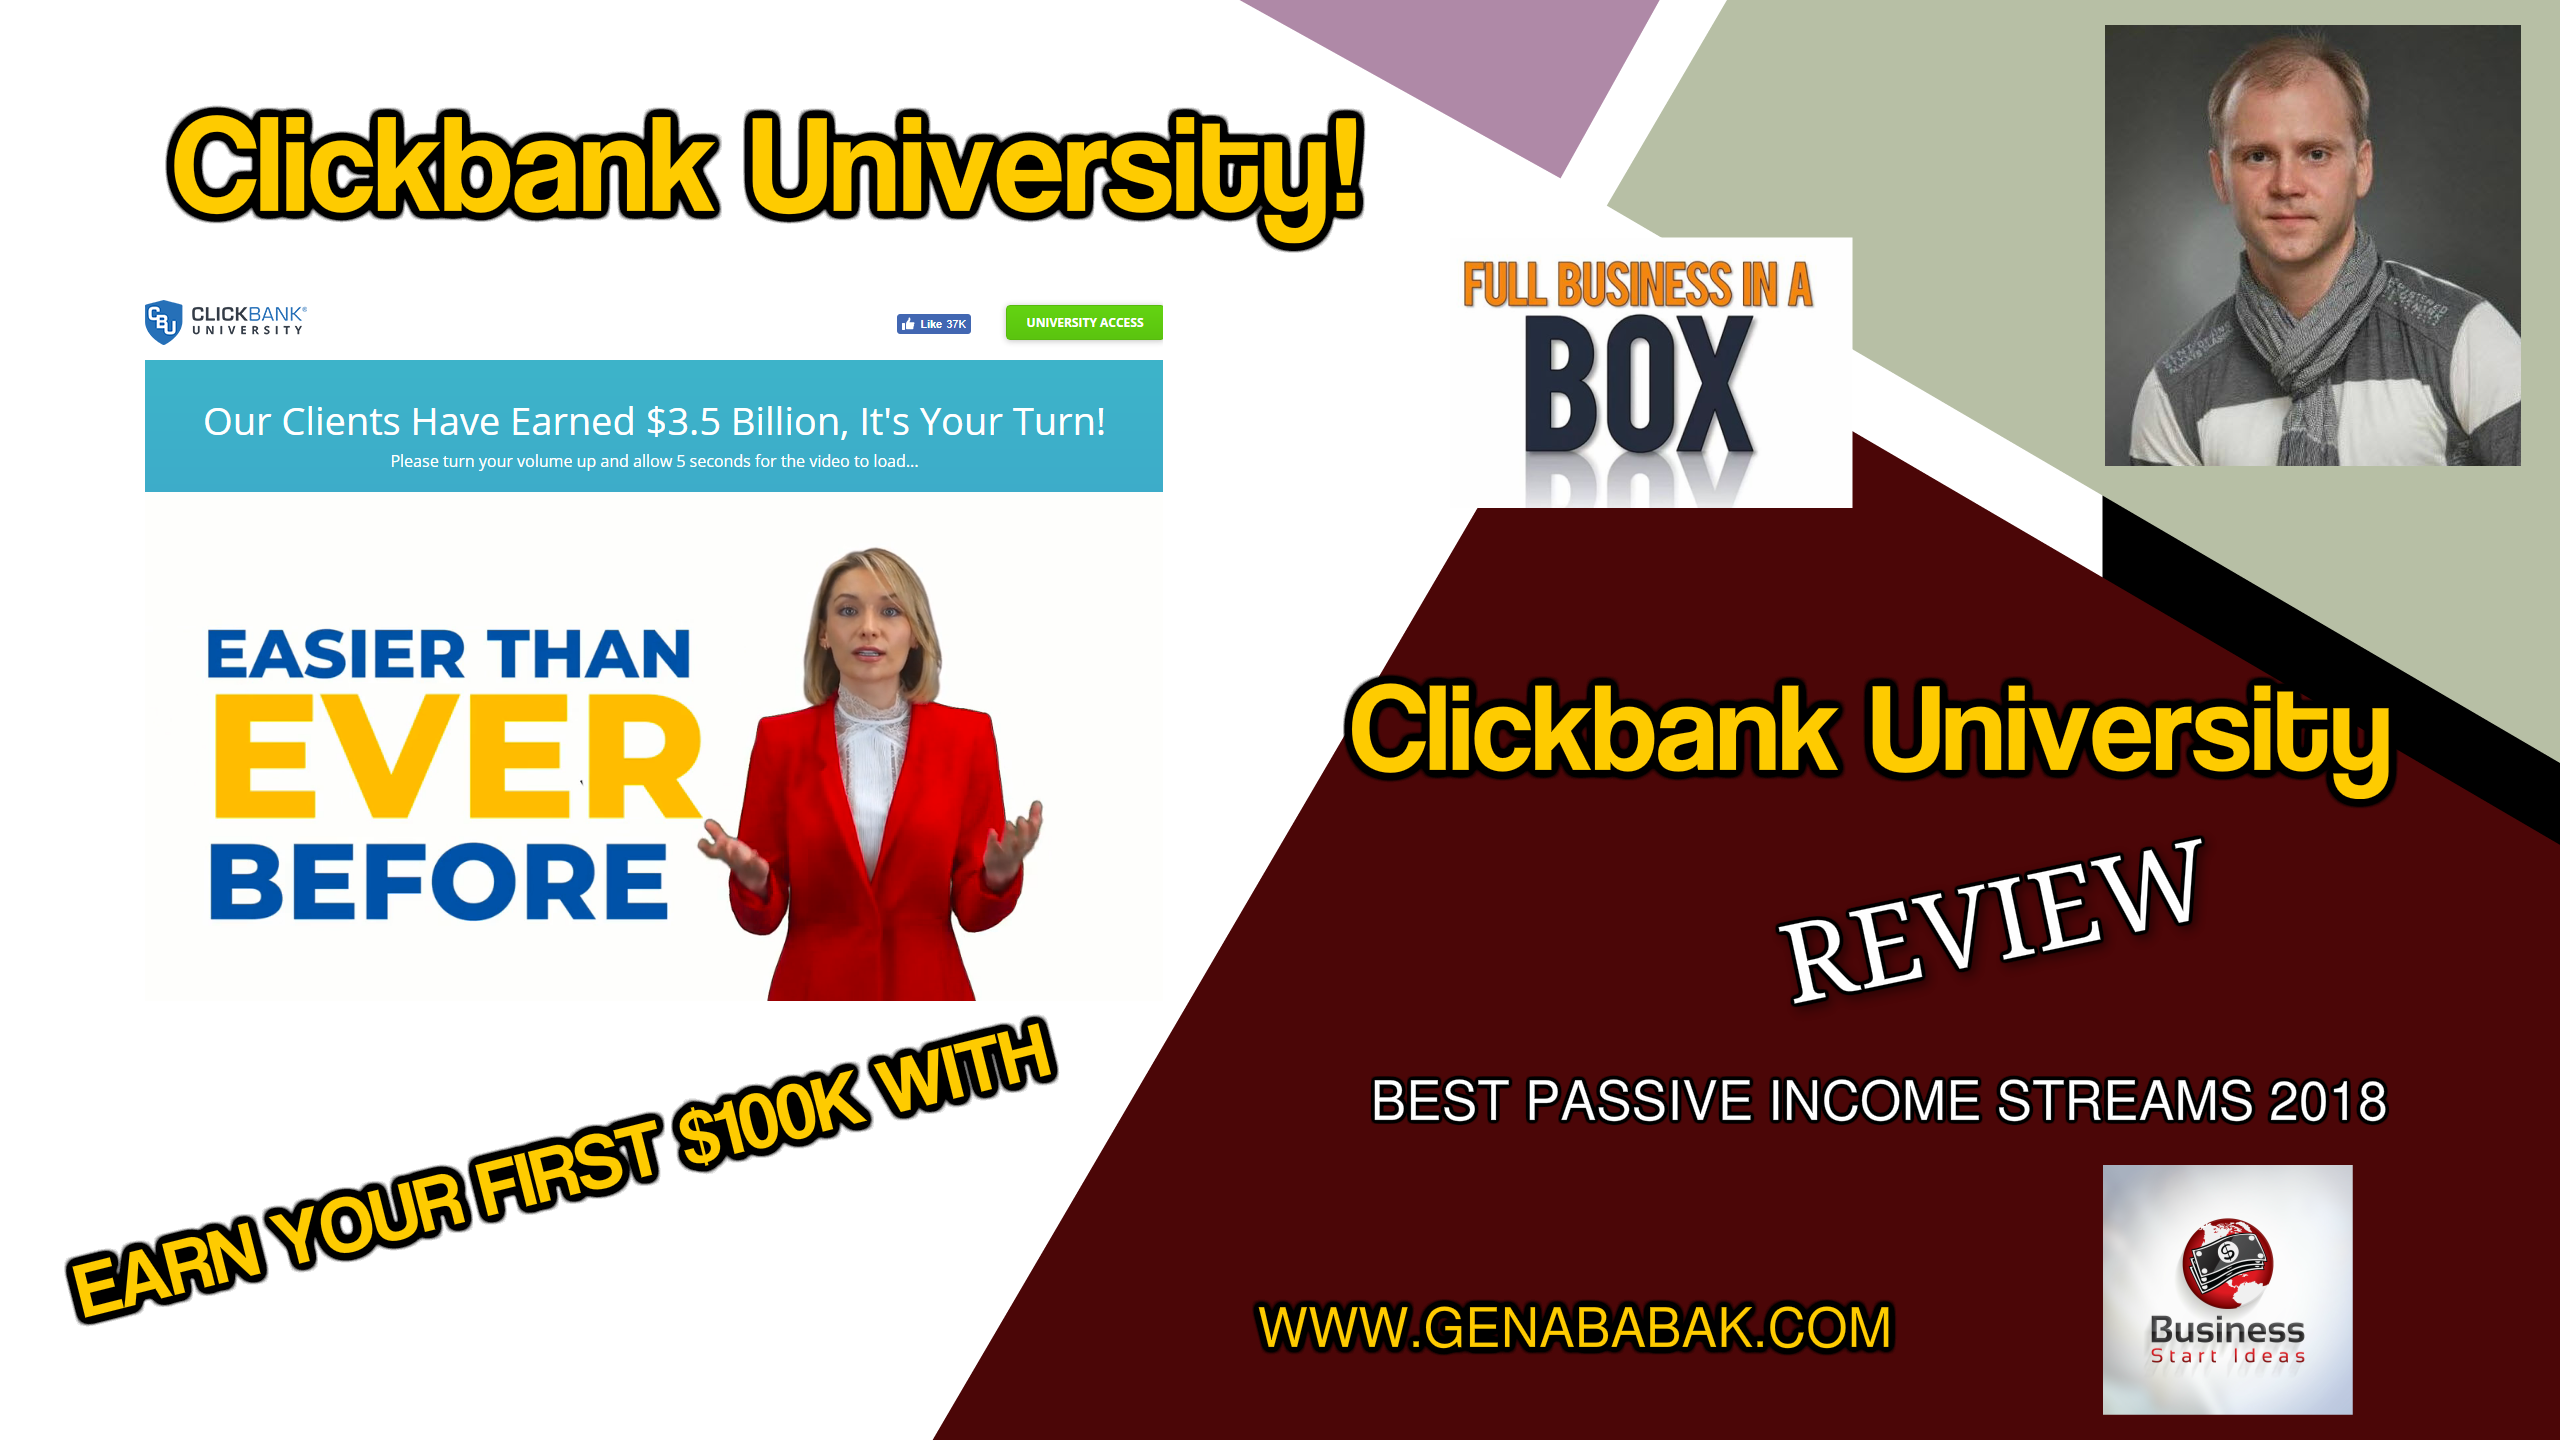 Clickbank University Review 2018 by Gena Babak